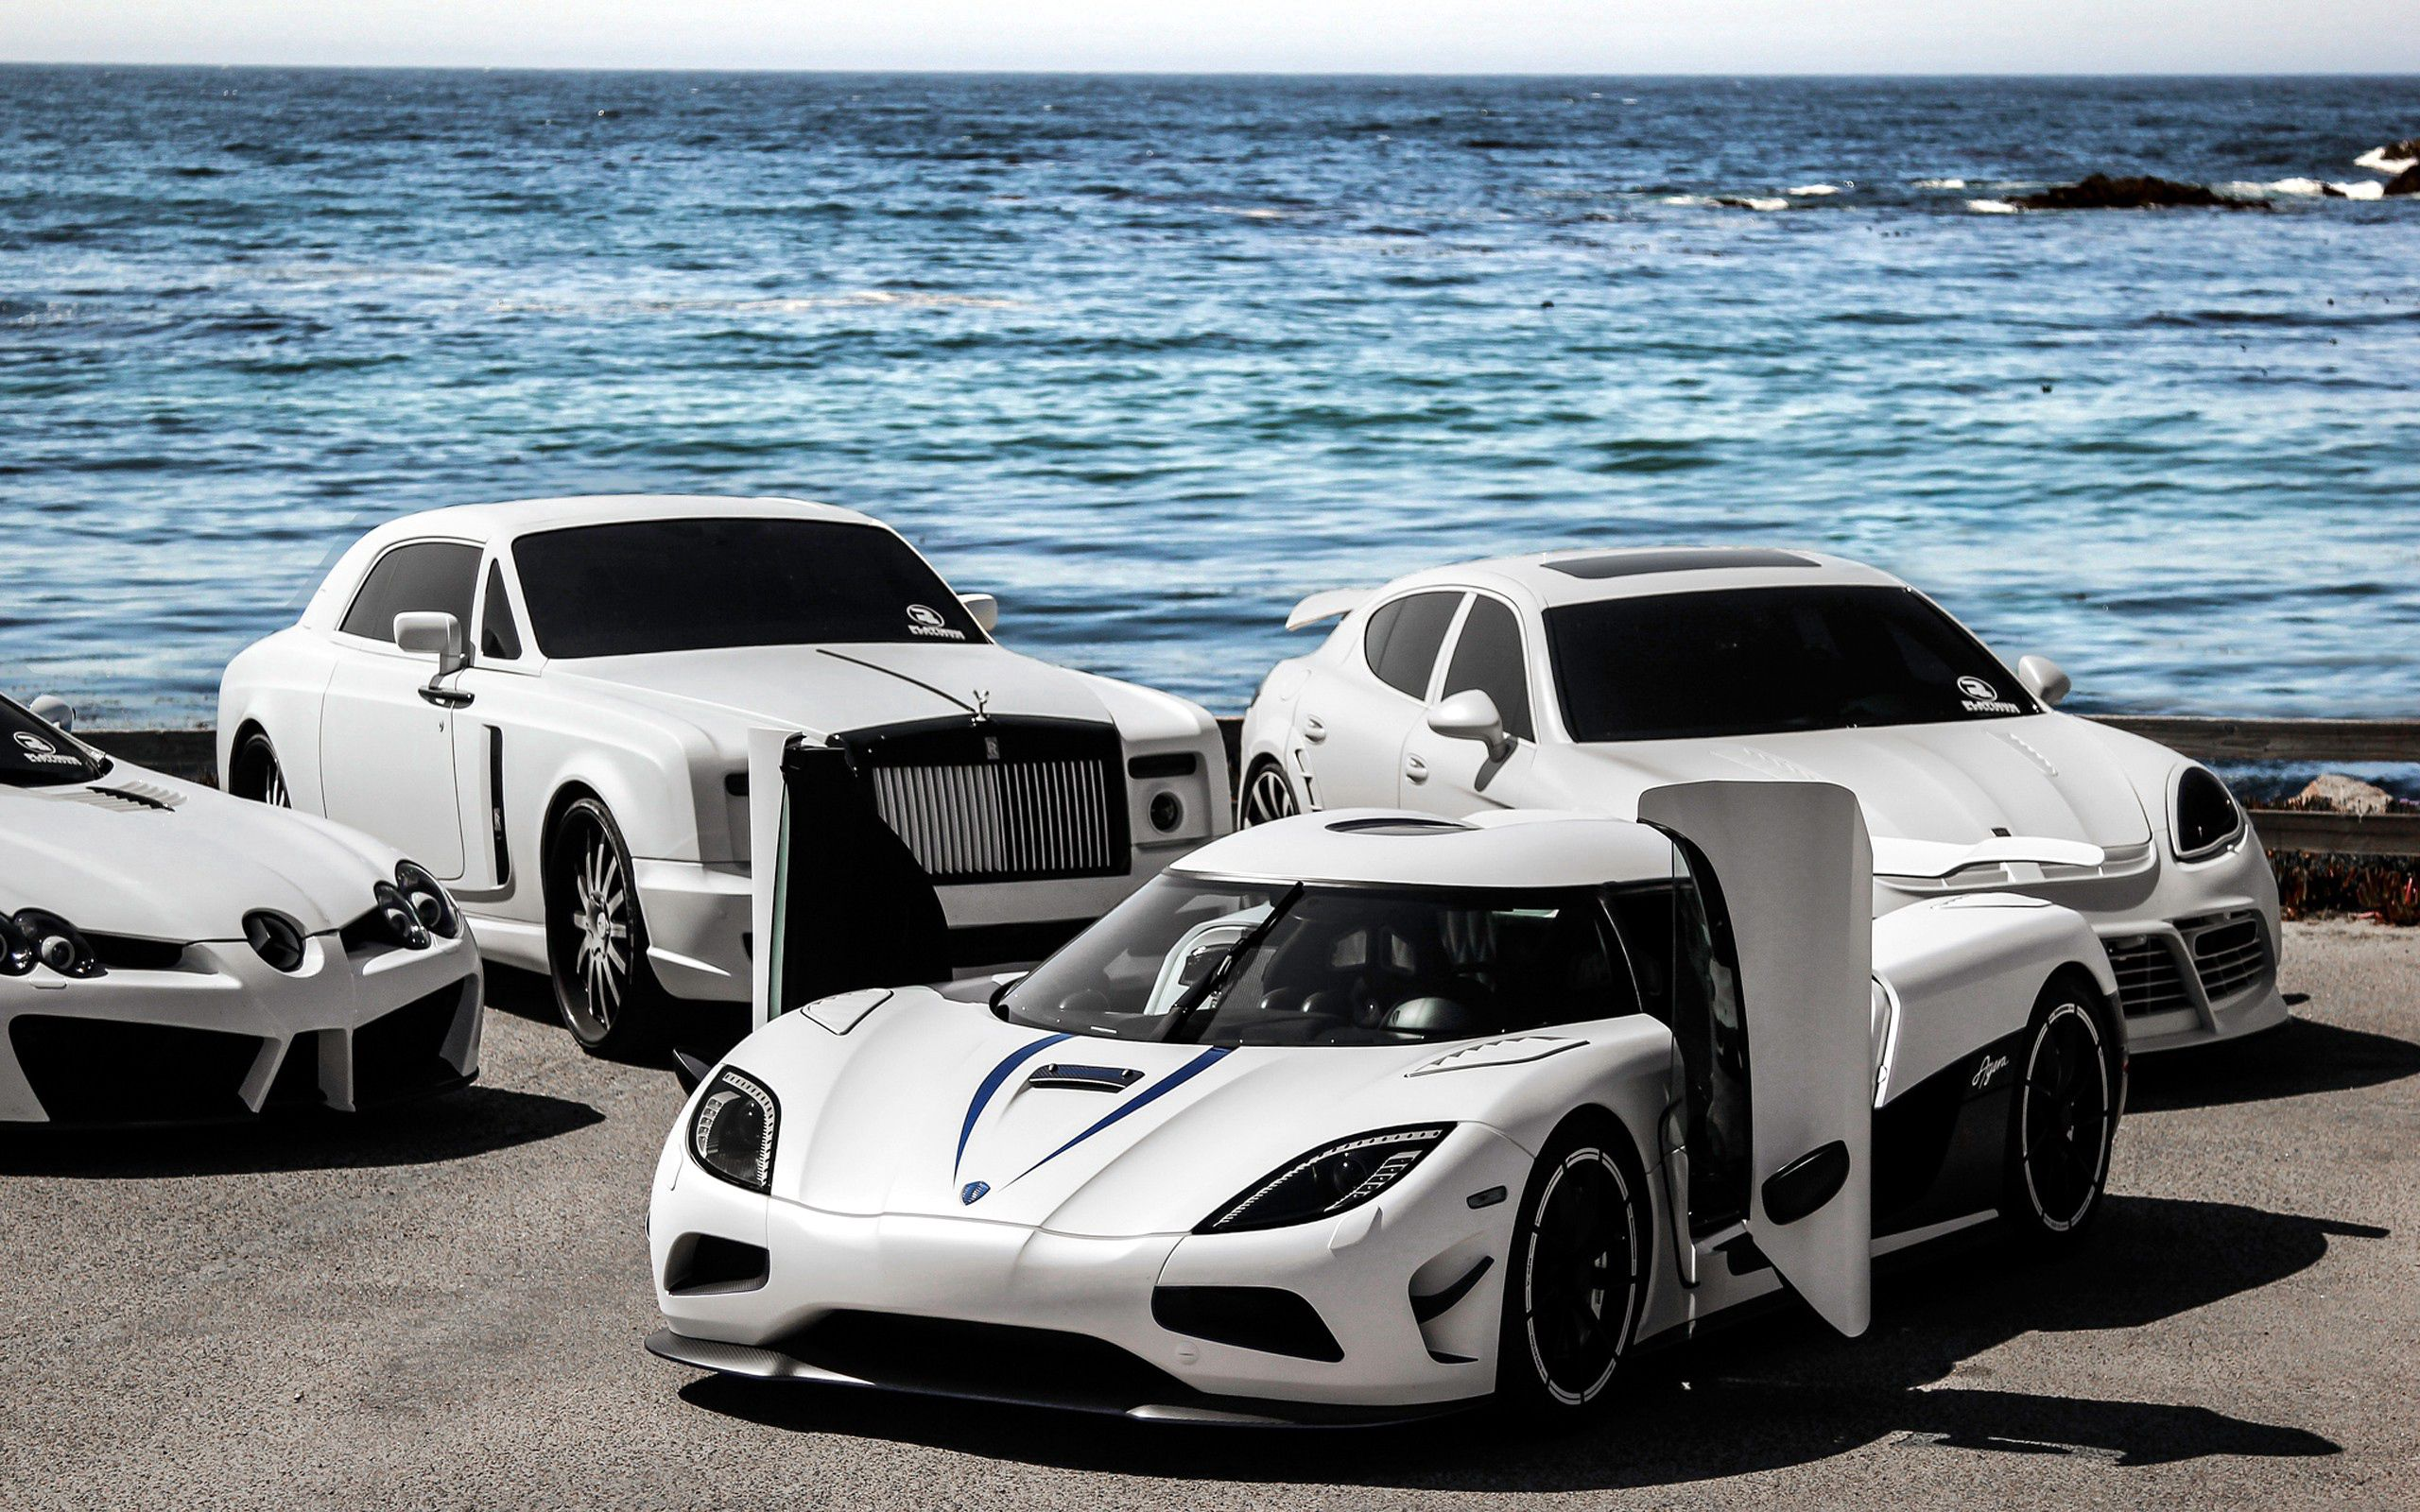 120851 download wallpaper Cars, Rolls-Royce, Koenigsegg, Mercedes-Benz screensavers and pictures for free